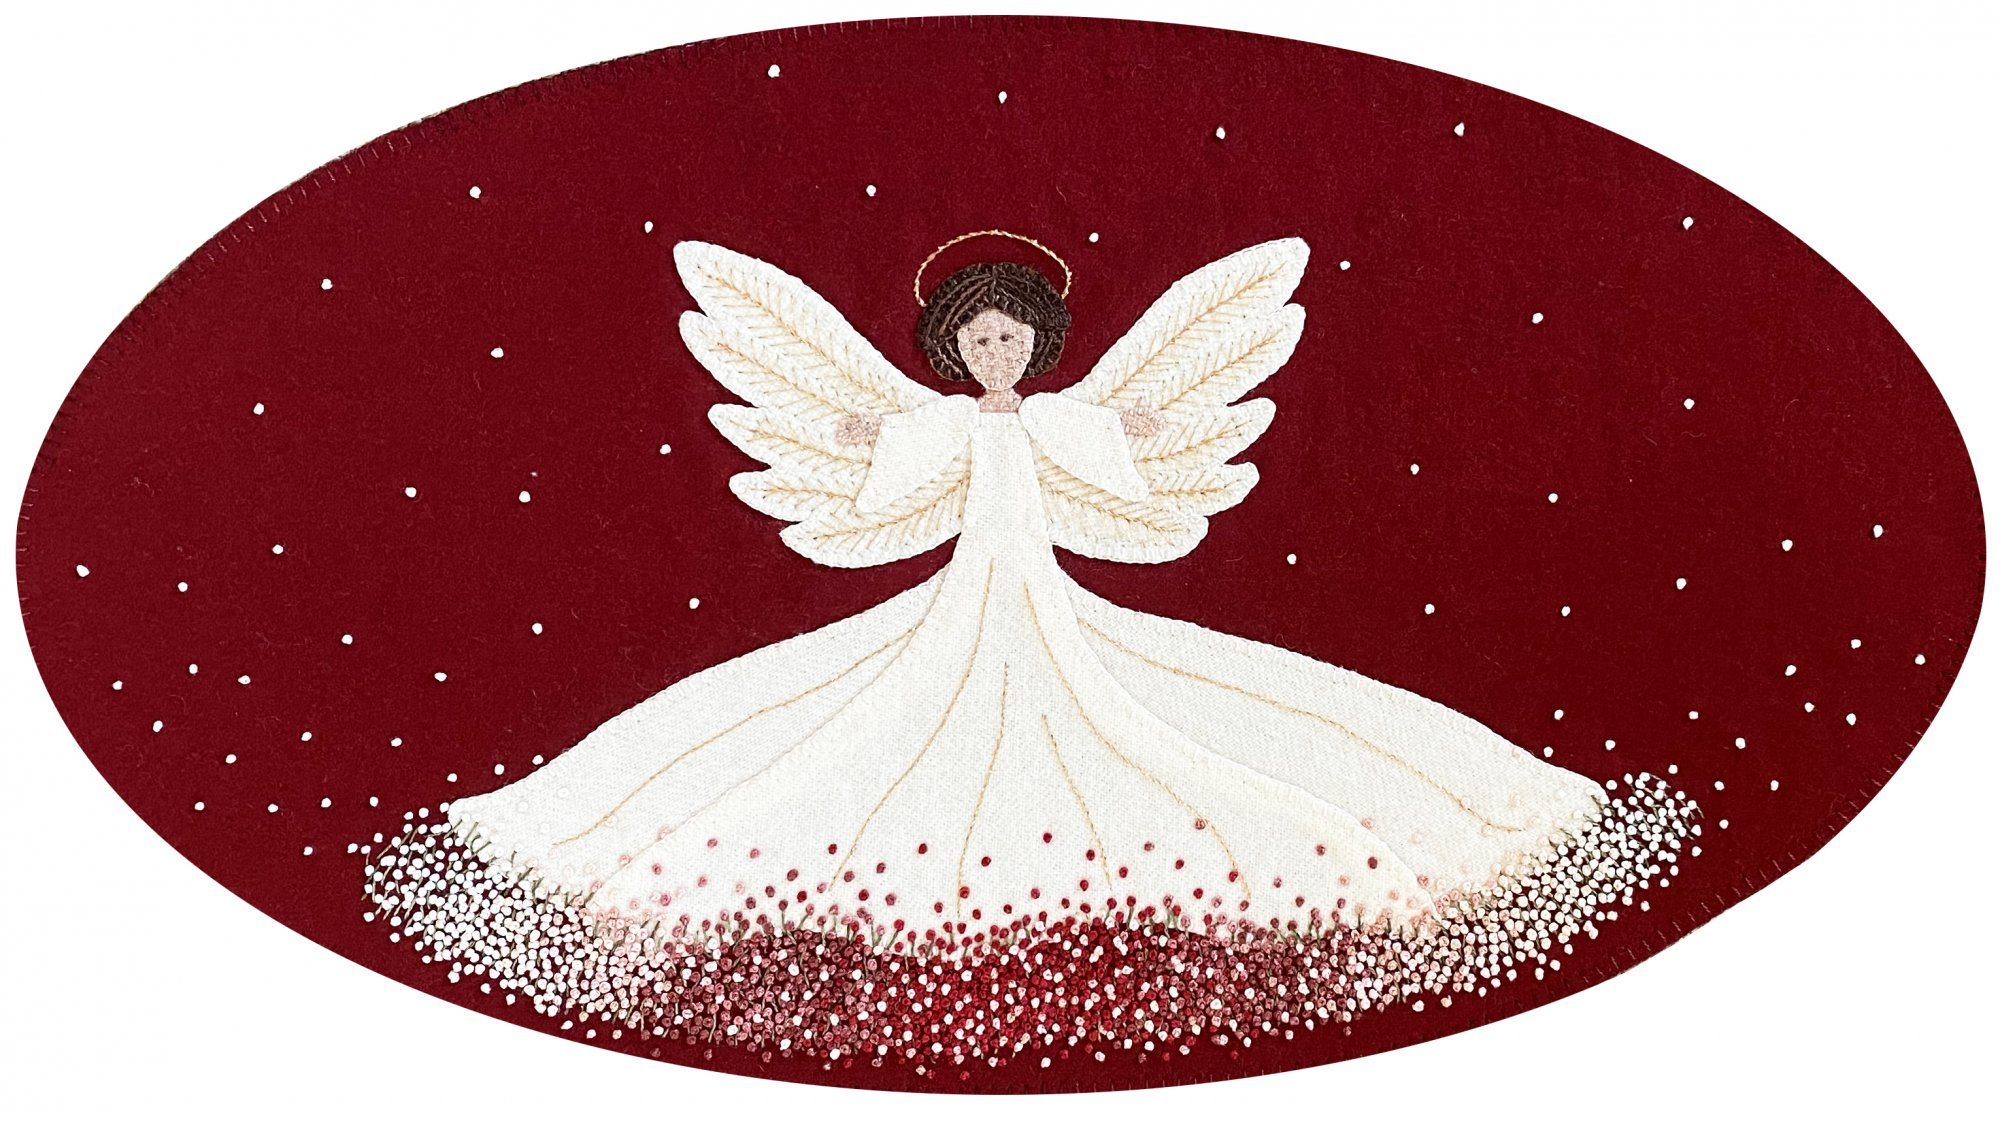 Angel Dust Wool Mat Pattern DIGITAL DOWNLOAD - Karen Yaffe